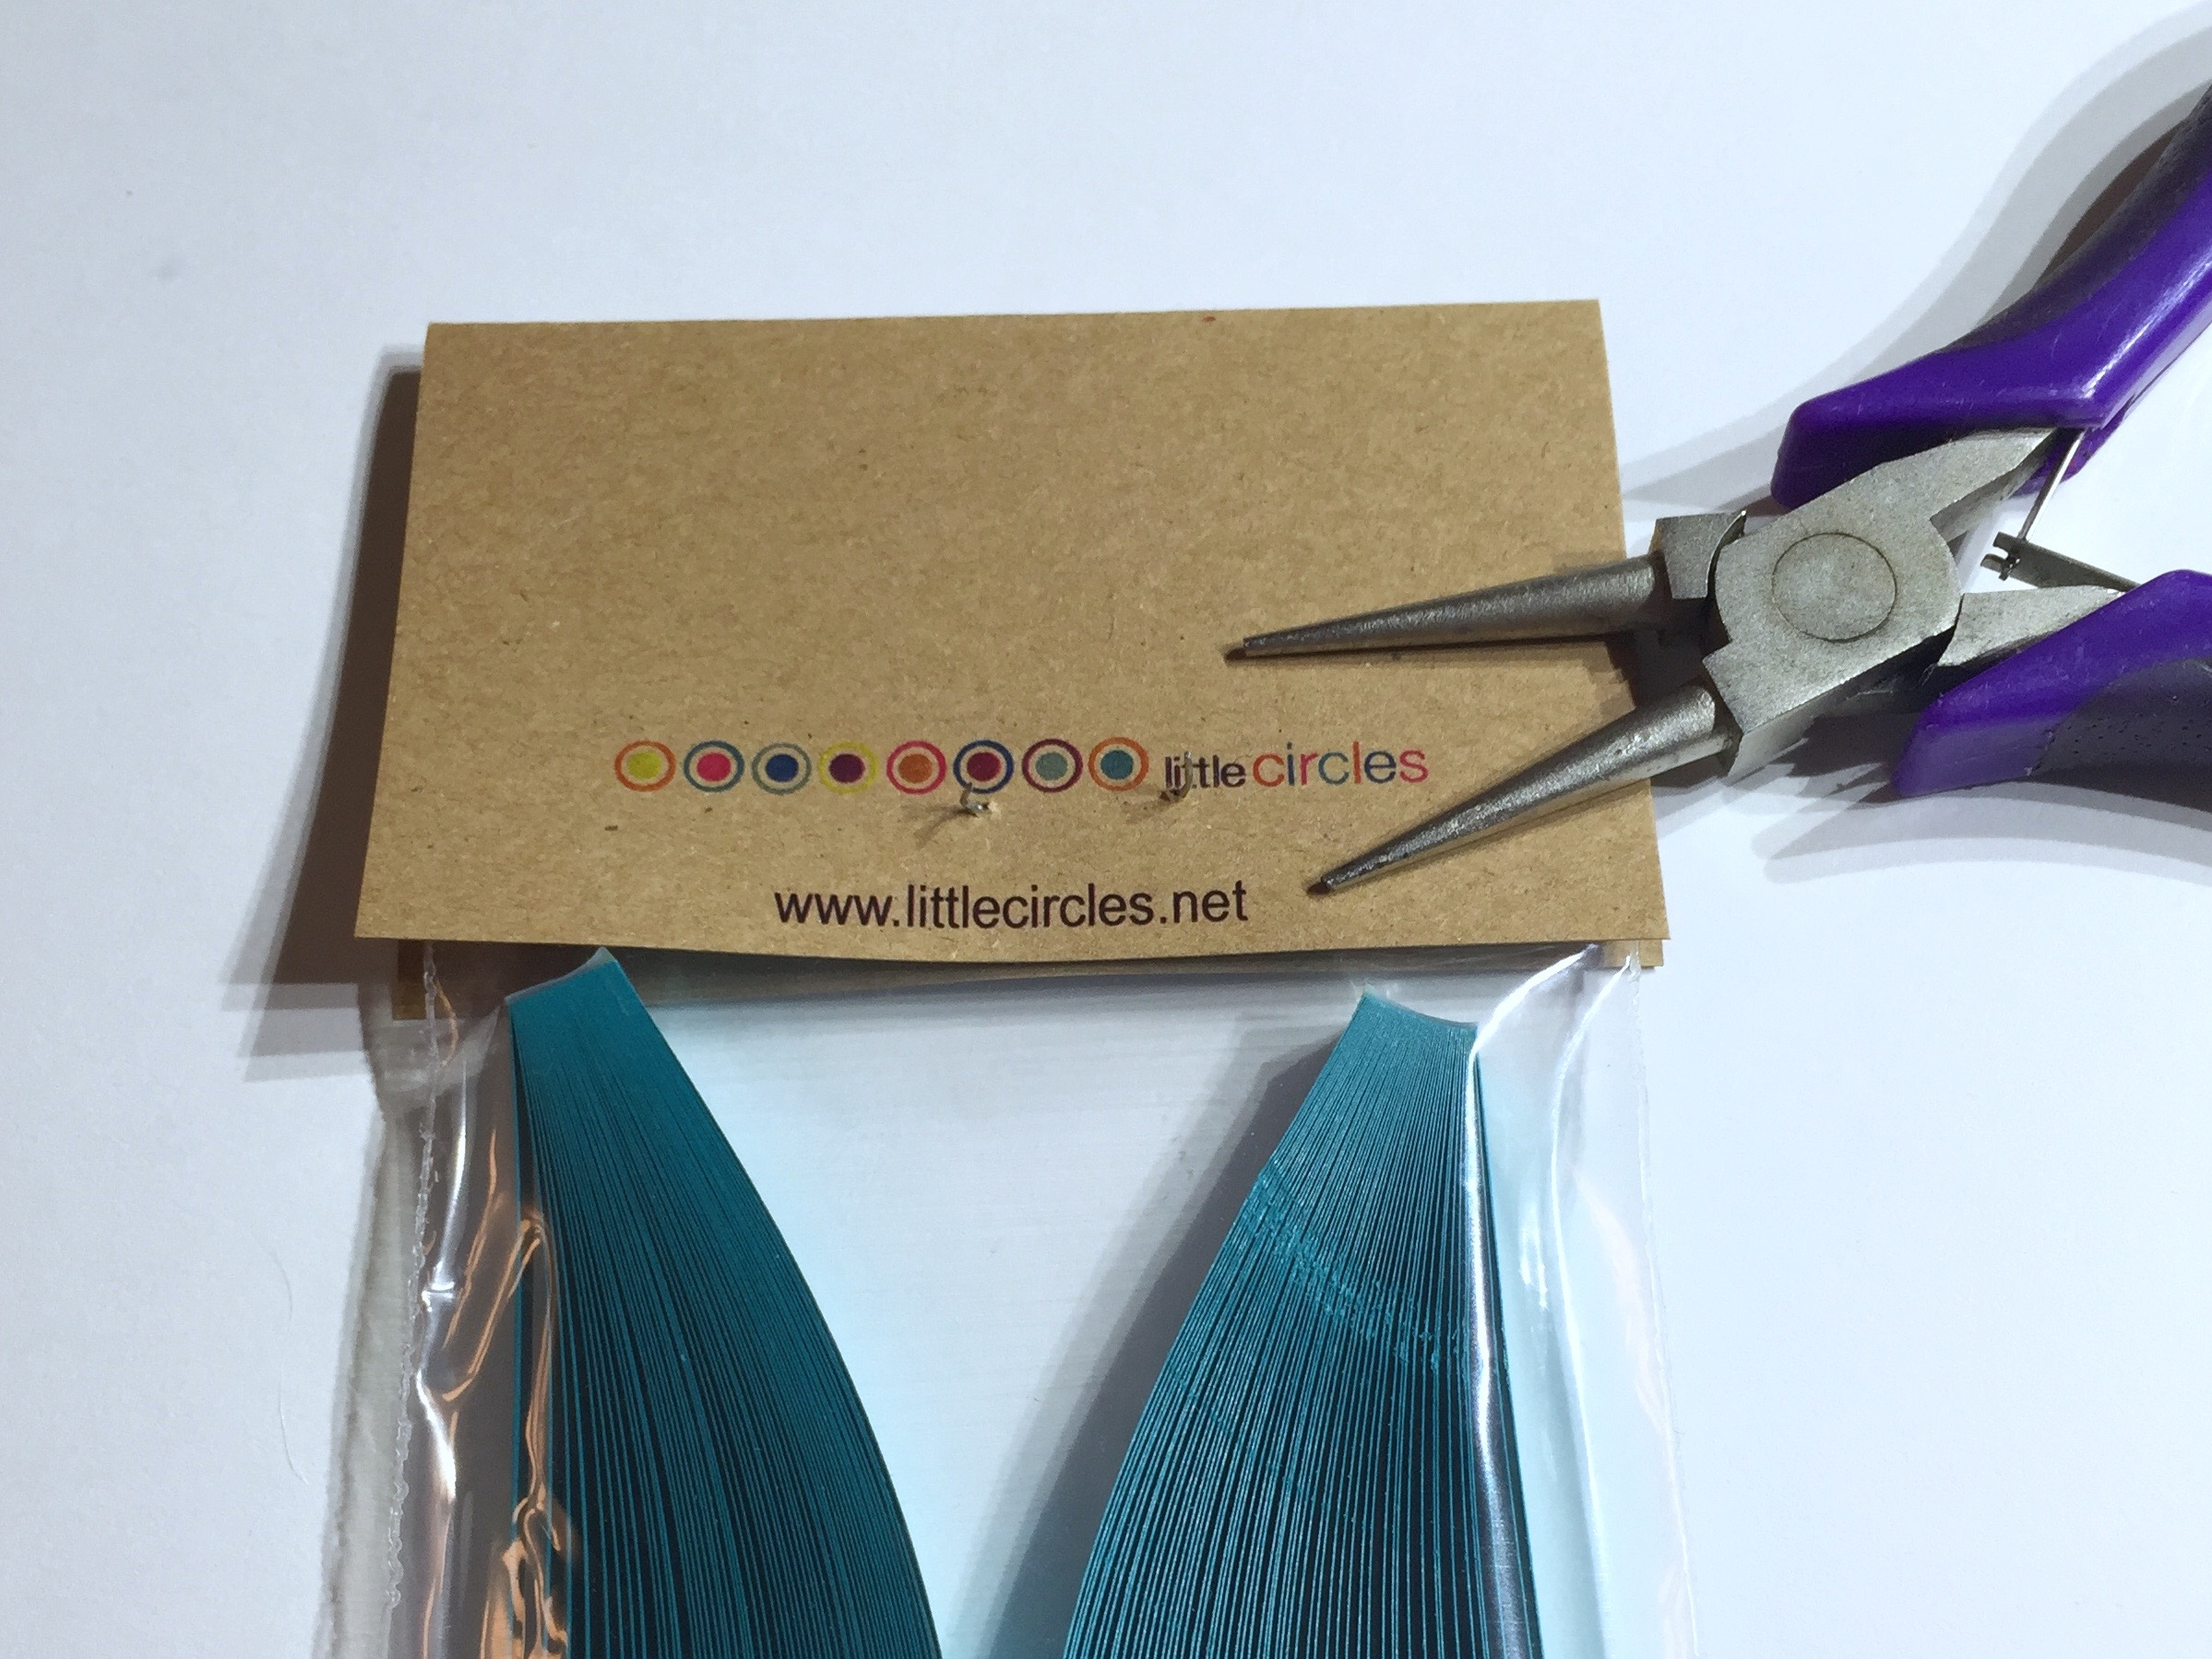 Image of taking staple out of a pack pf quilling strips lablel